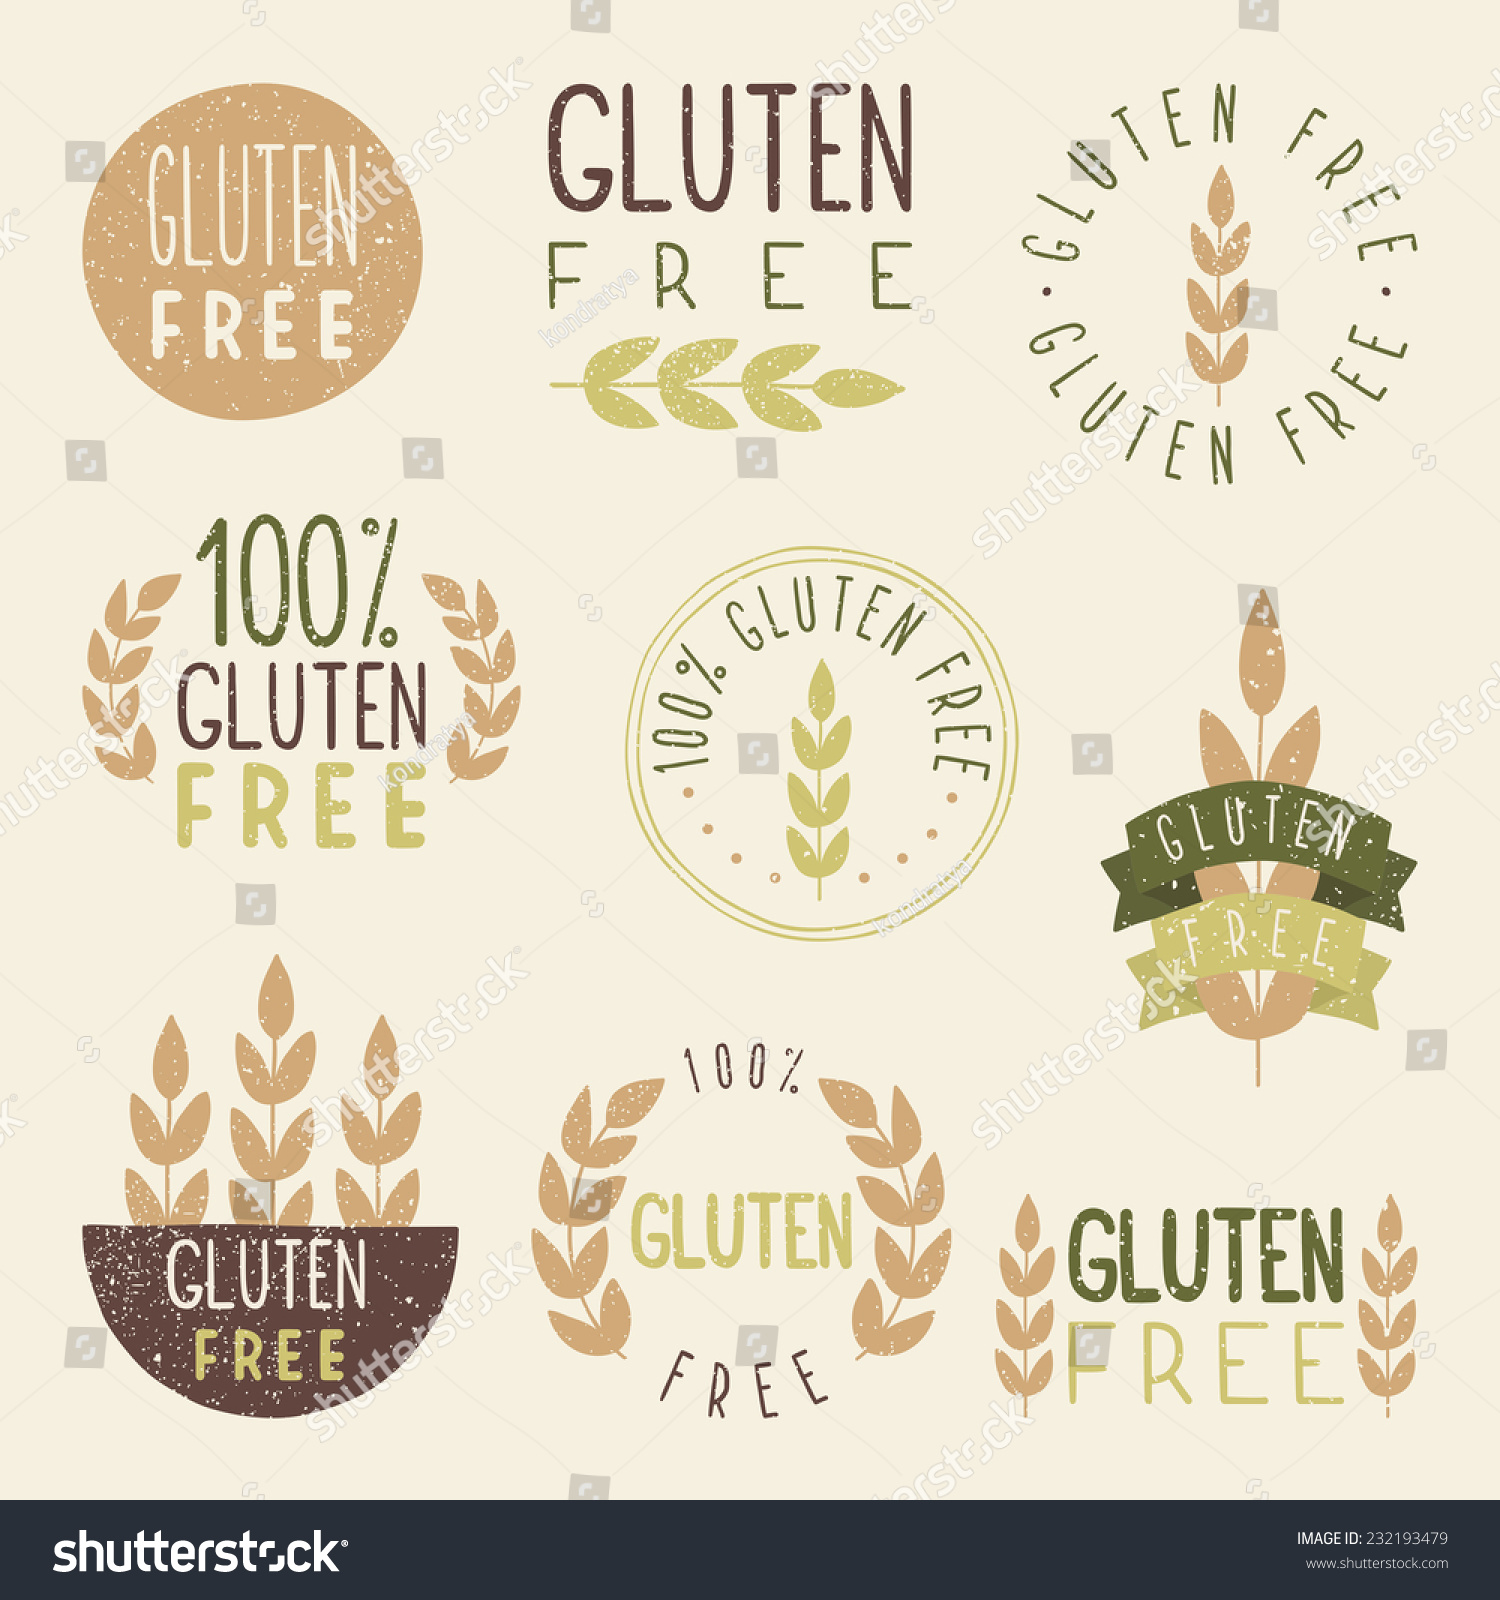 gluten free Learn about foods that are acceptable in a gluten-free diet and tips for selecting healthy, nutritional options.